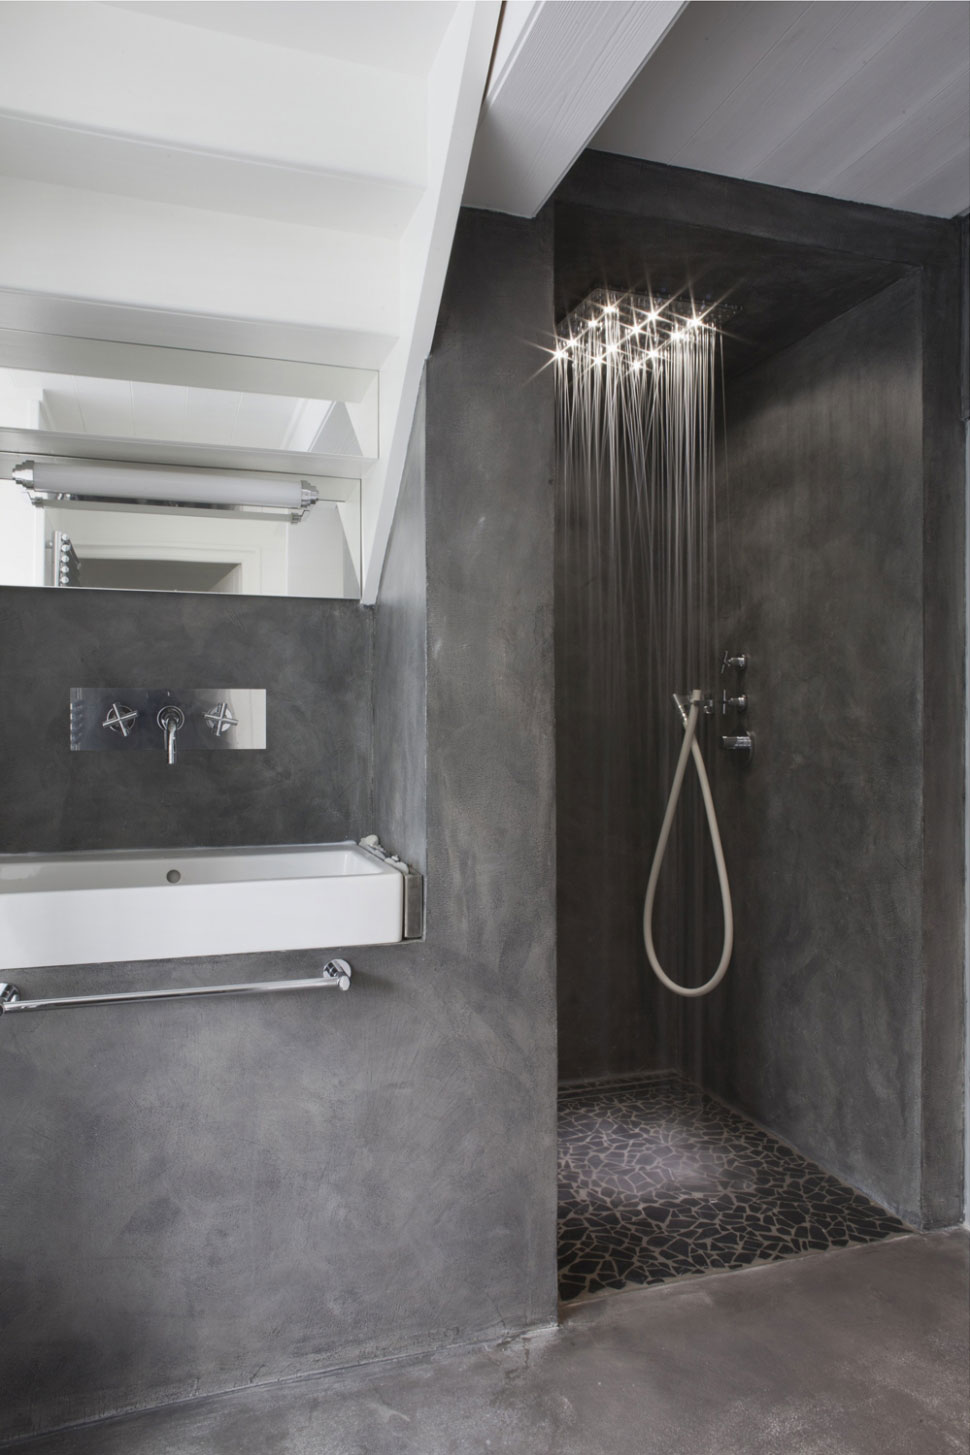 Black Rustic Bathroom Design With Concrete Wall And Vanity With White  Modern Sink And Walk In